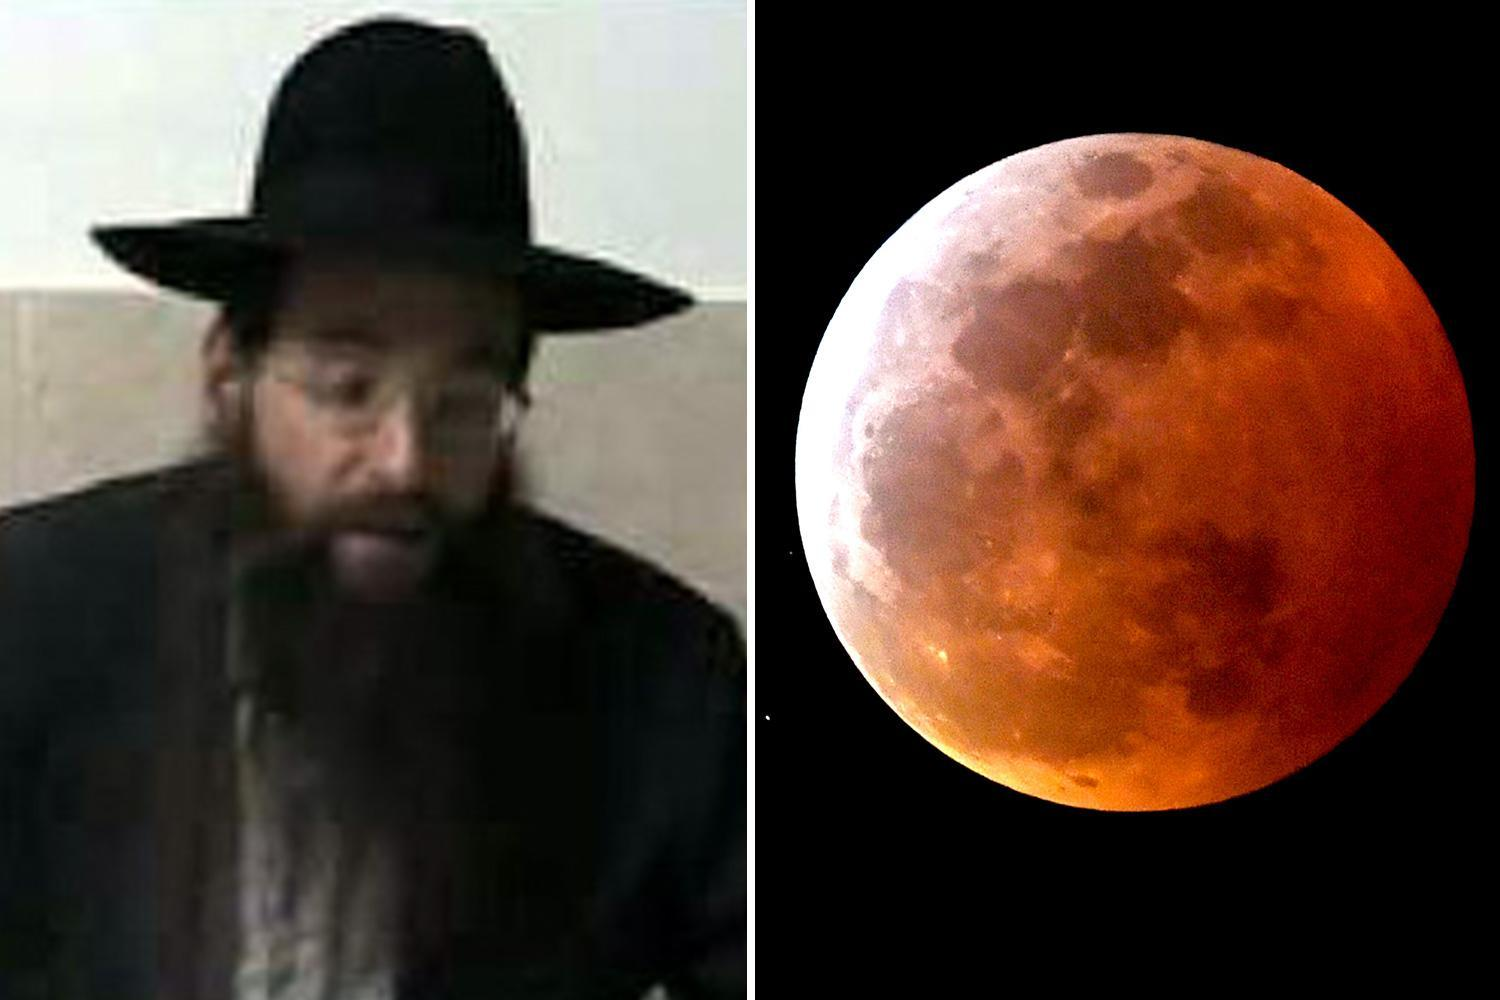 Super blood wolf moon an omen of 'human suffering' and sign all Jews should return to Israel, rabbi claims